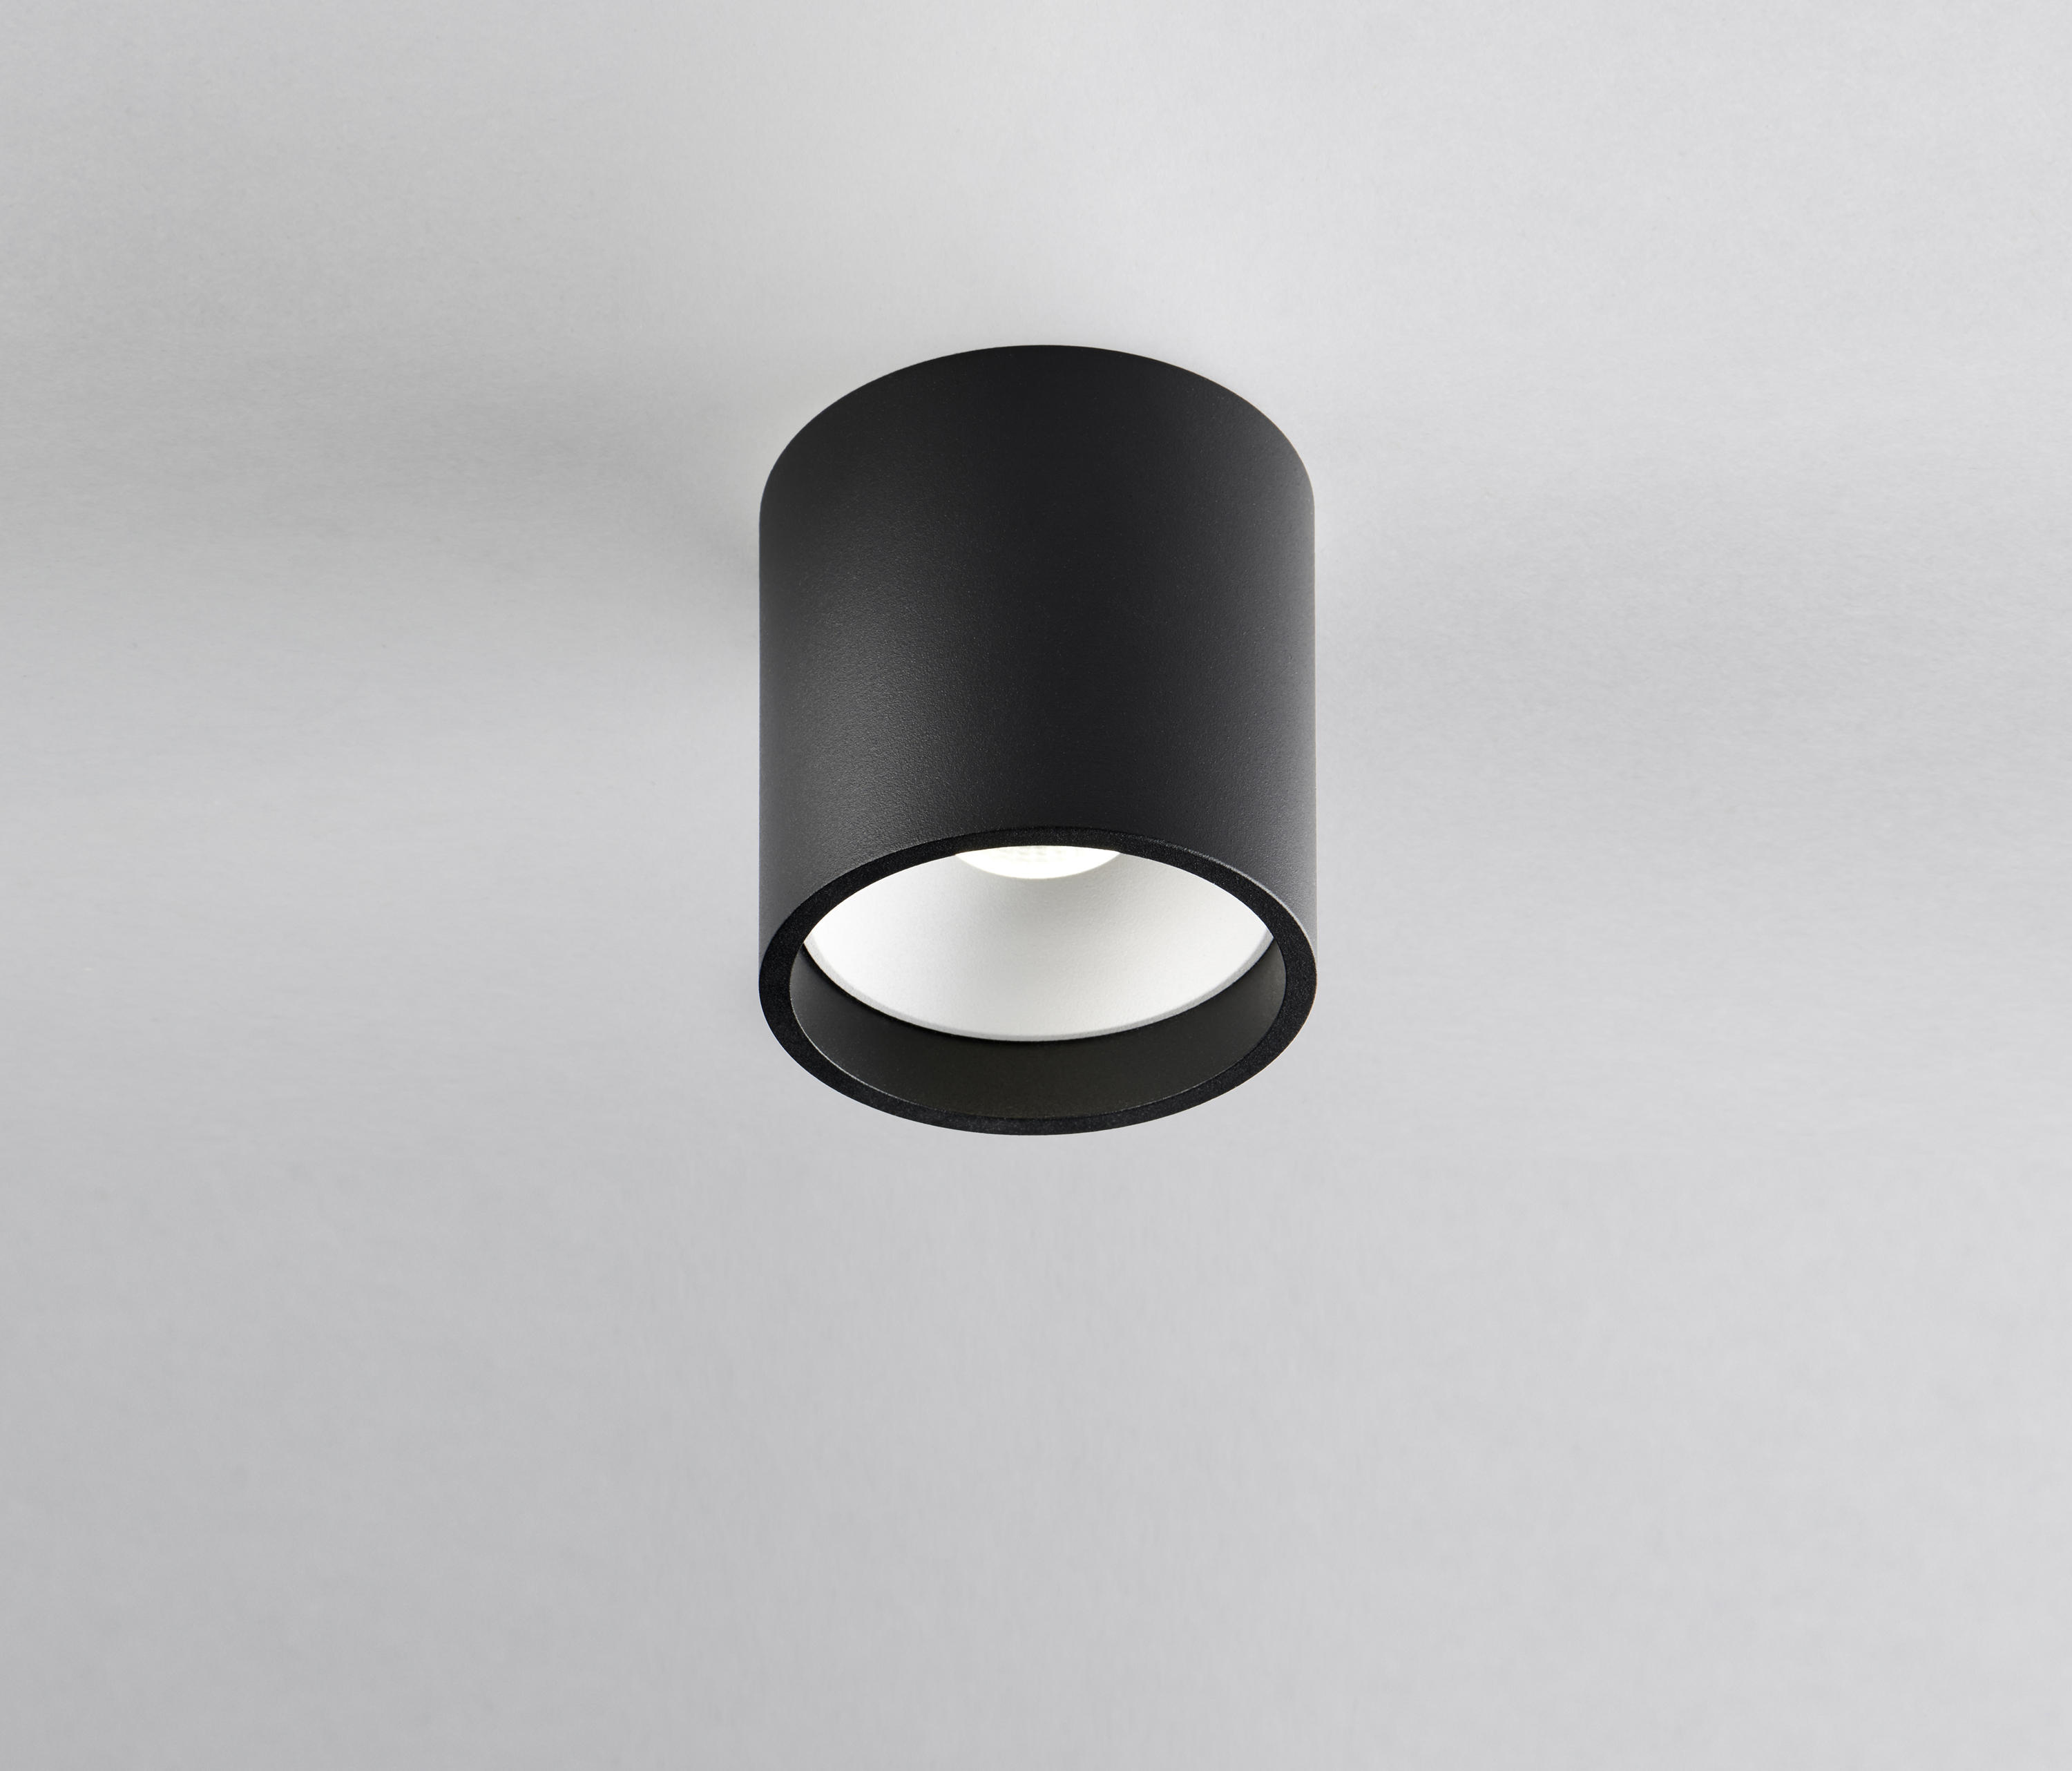 Solo Round Ceiling Lights From Light Point Architonic